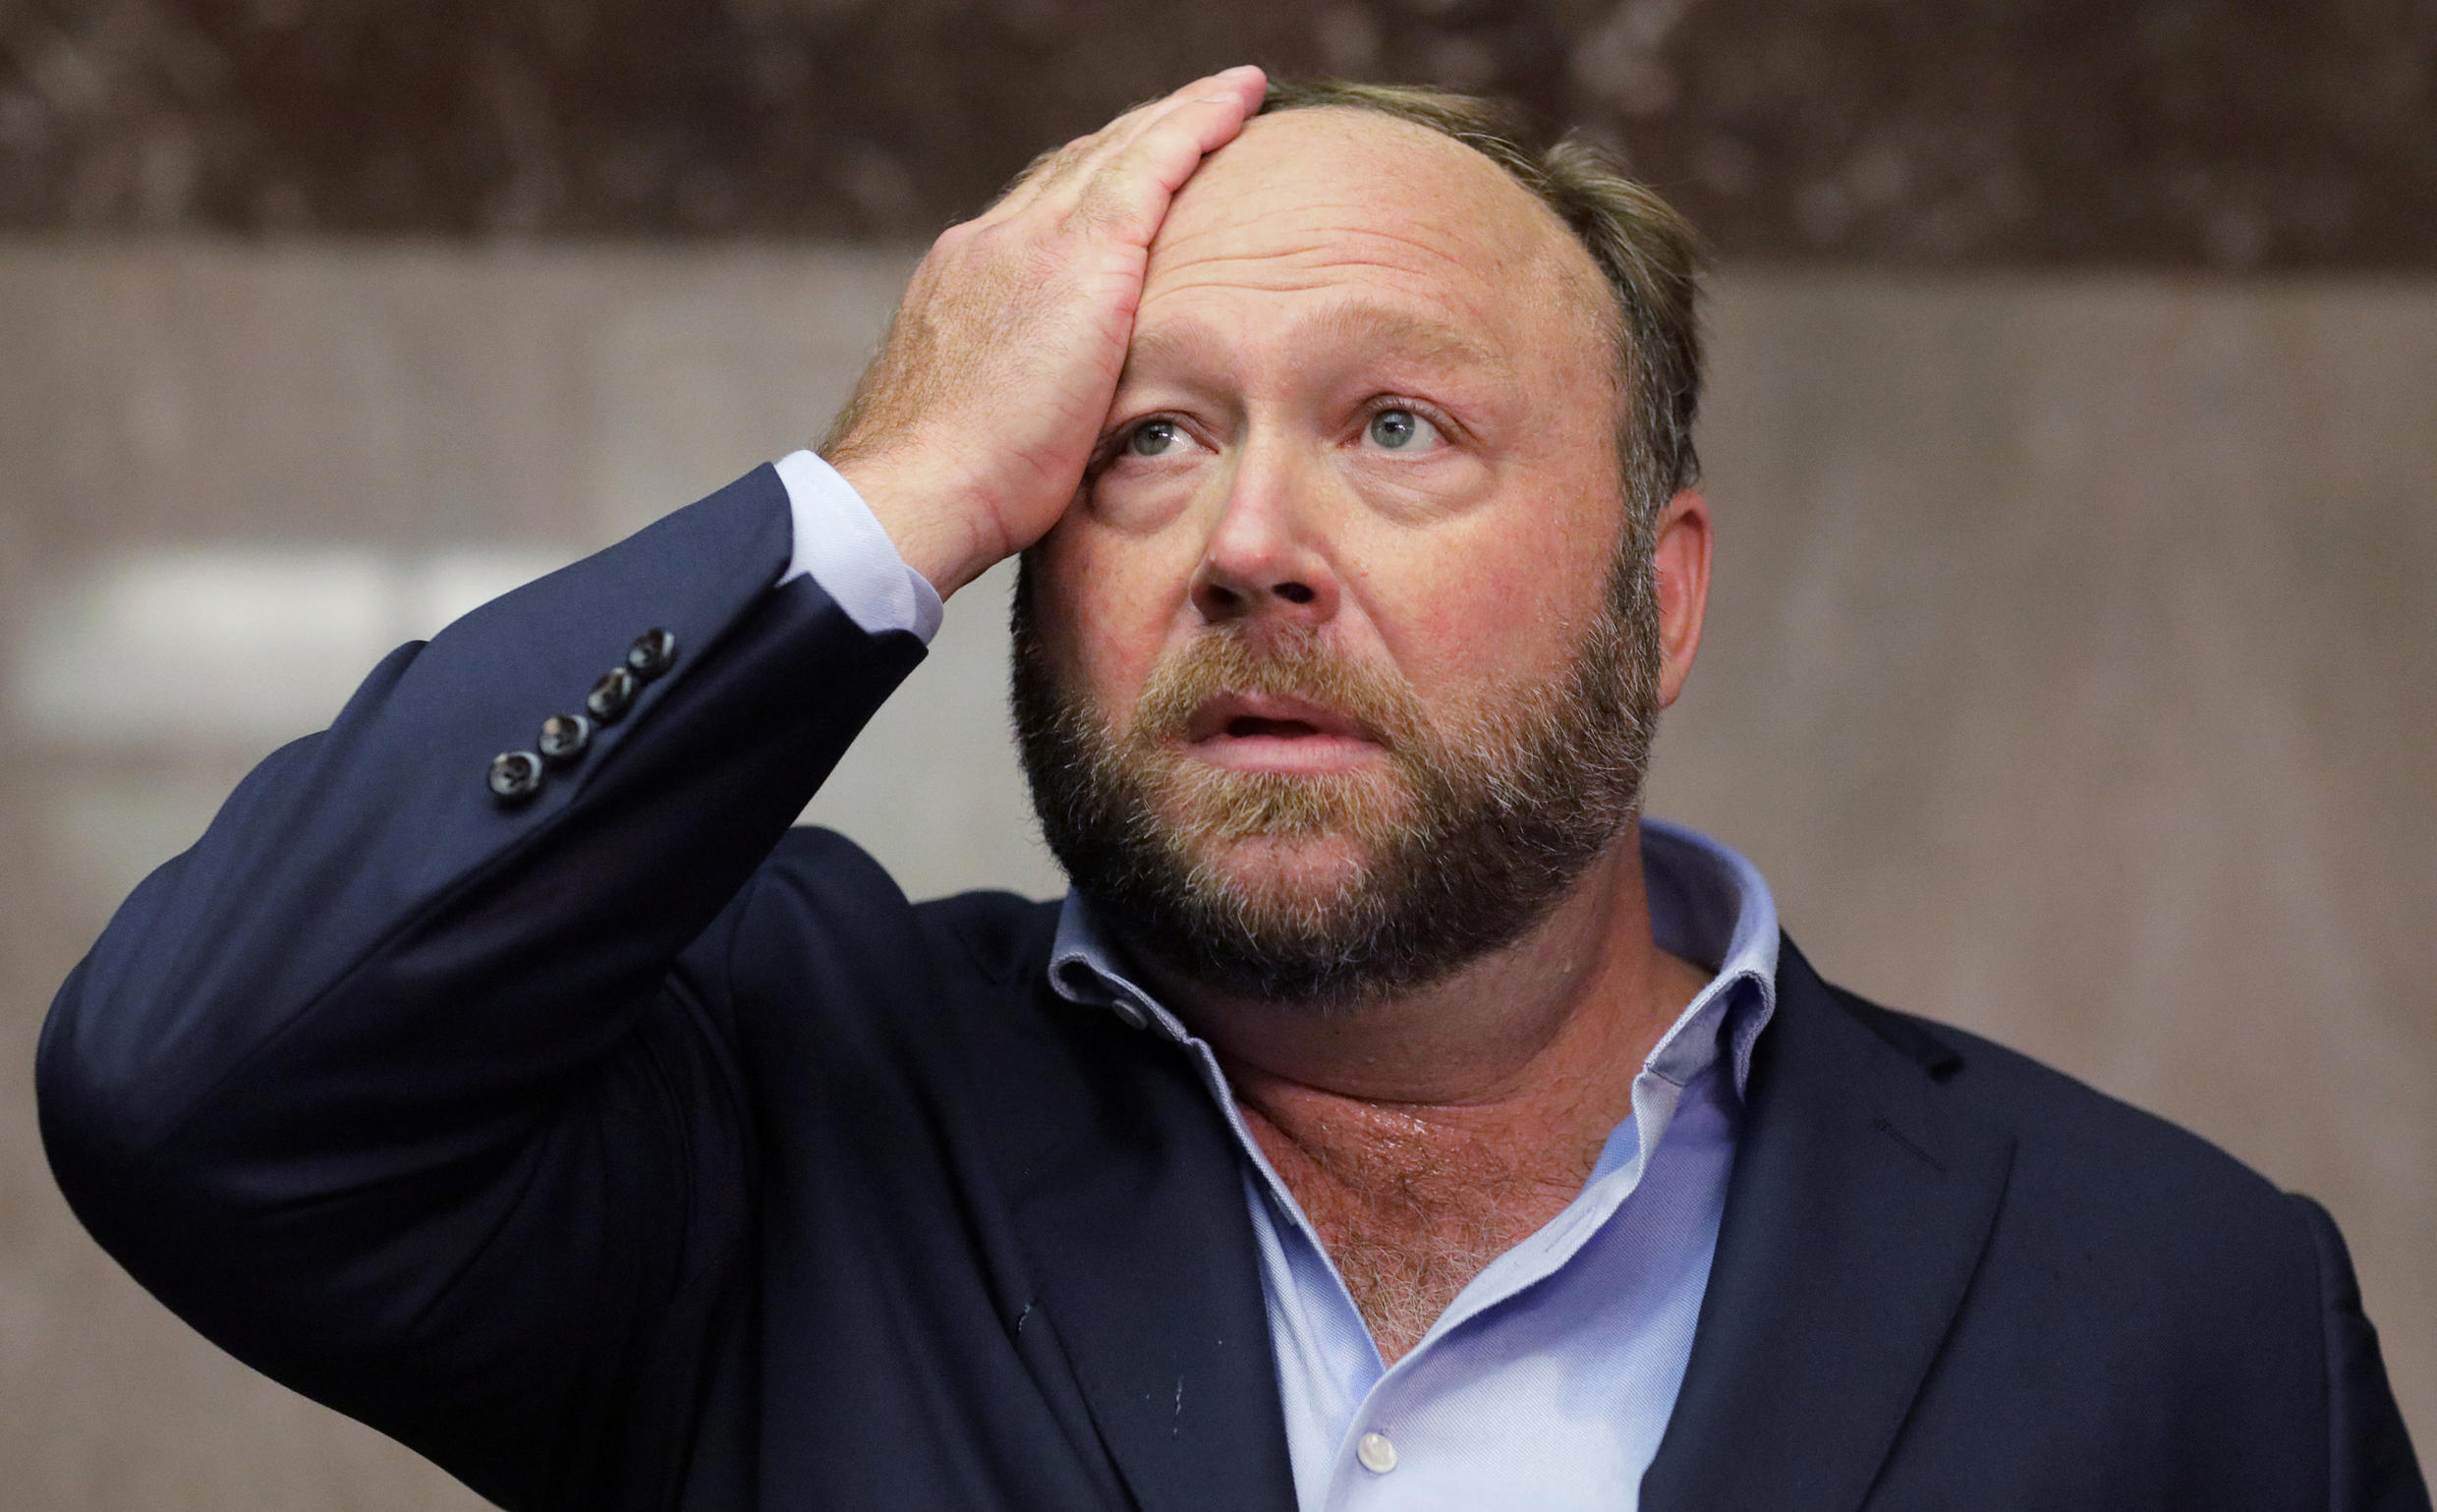 American broadcaster and conspiracy theorist Alex Jones of InfoWars at a hearing at the Senate in Washington, 5 September 2018.